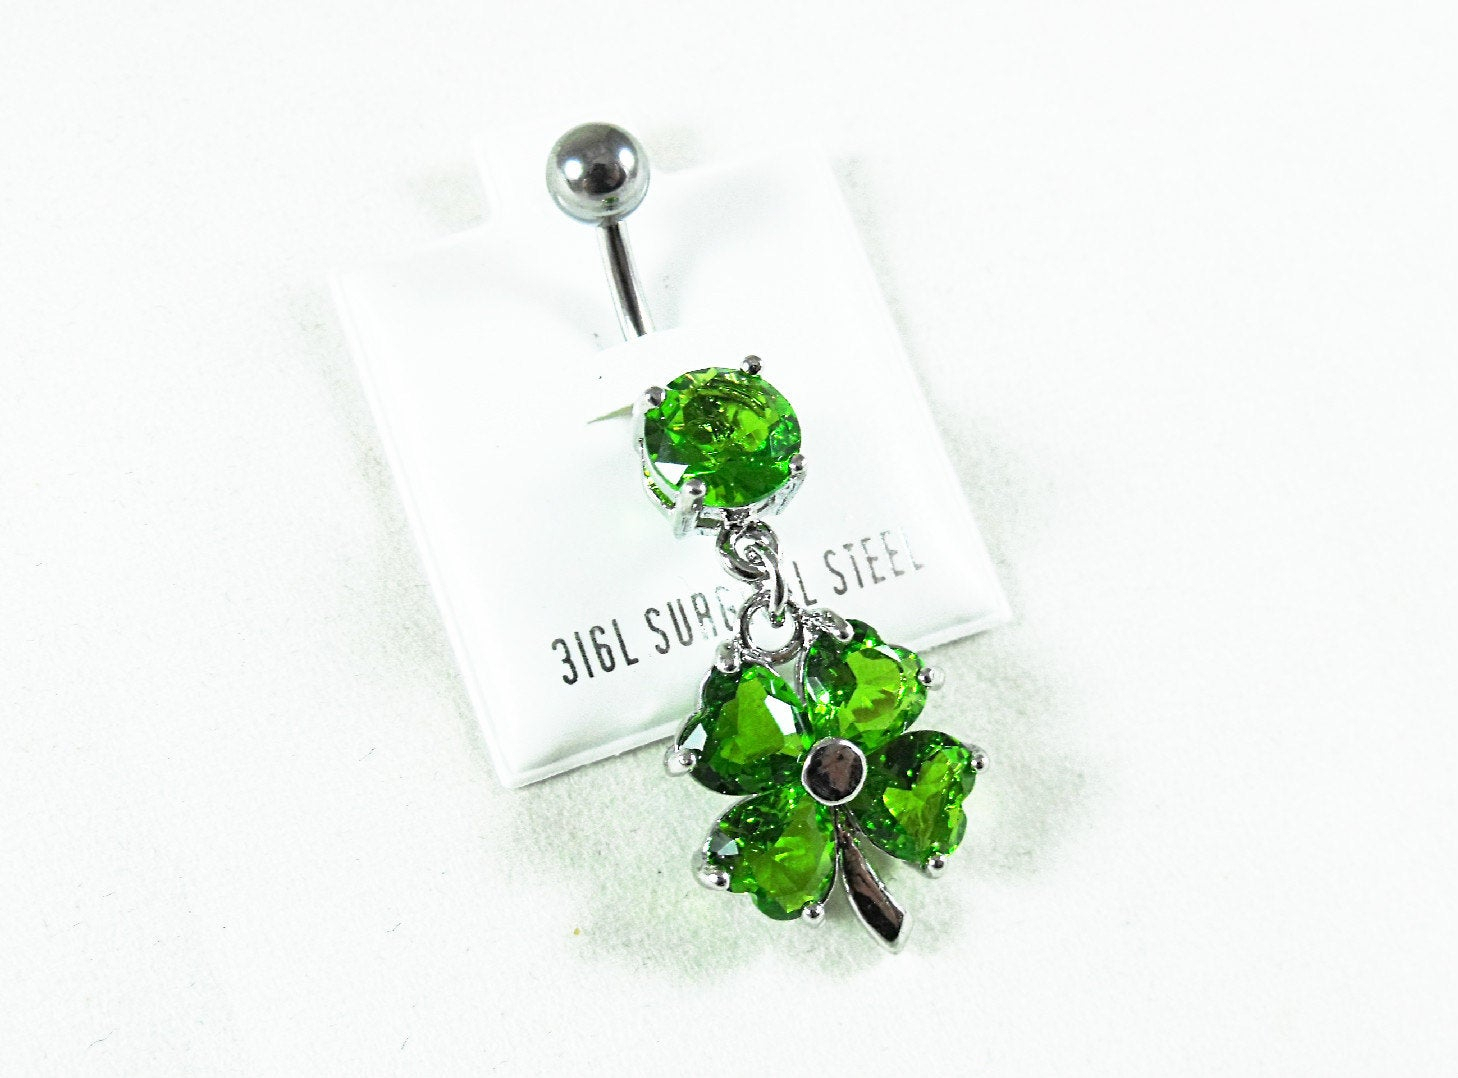 Dangle Belly Ring, Cz Green Shamrock Or Four Leaf Clover Womens Gift Pertaining To Most Up To Date Dangling Four Leaf Clover Rings (View 9 of 25)